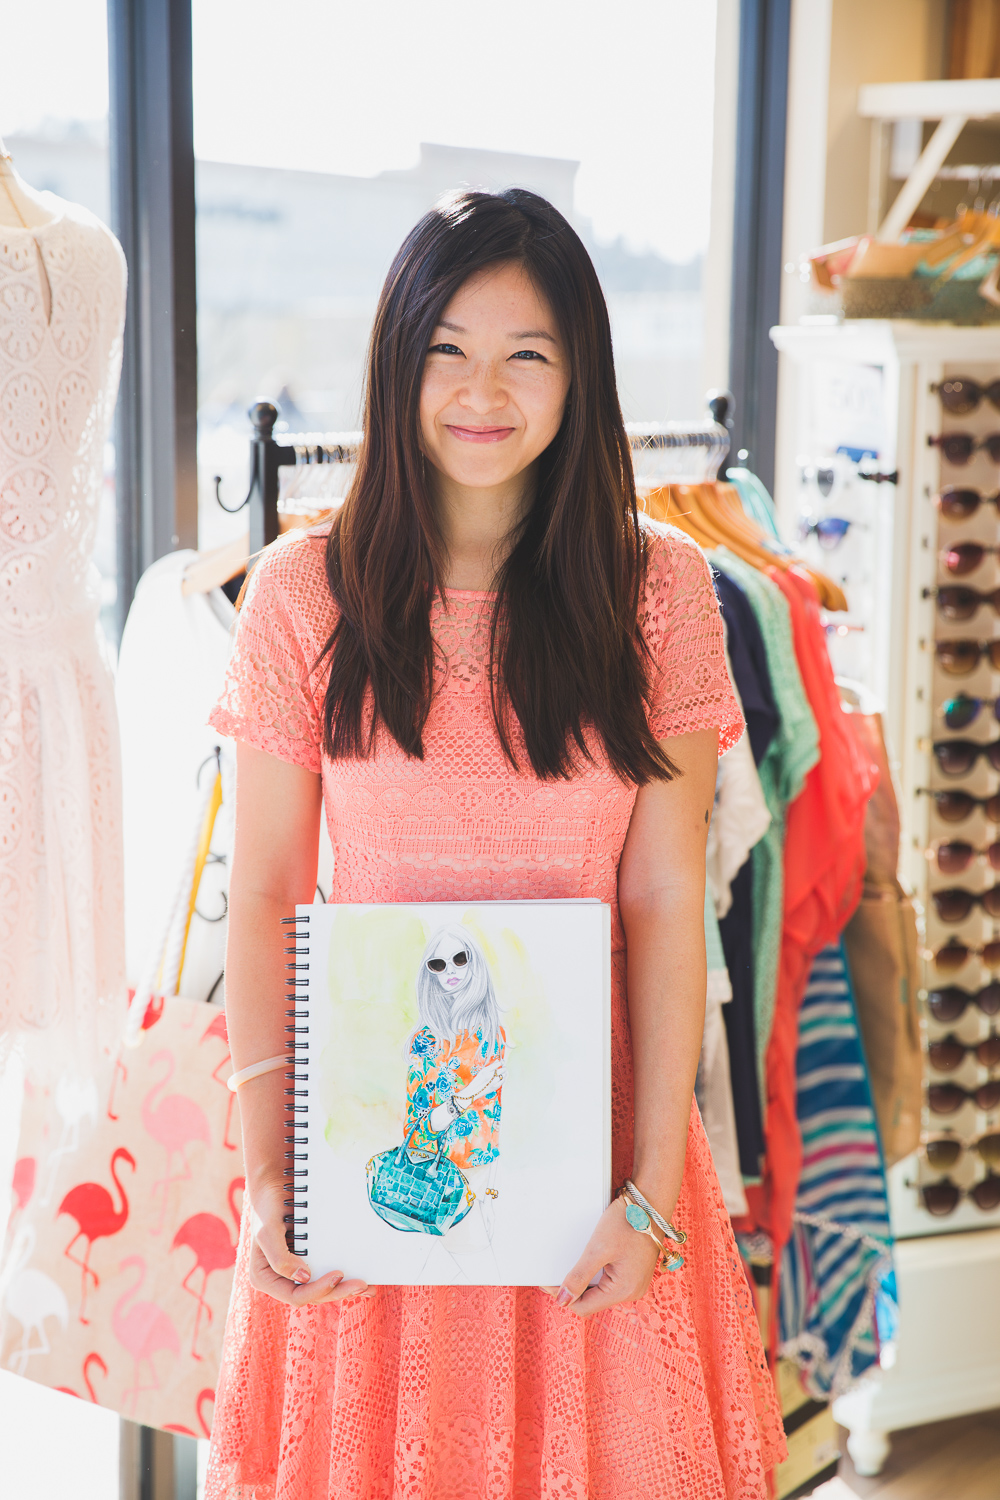 Fashion Illustrator Rongrong DeVoe featured on Francesca's blog